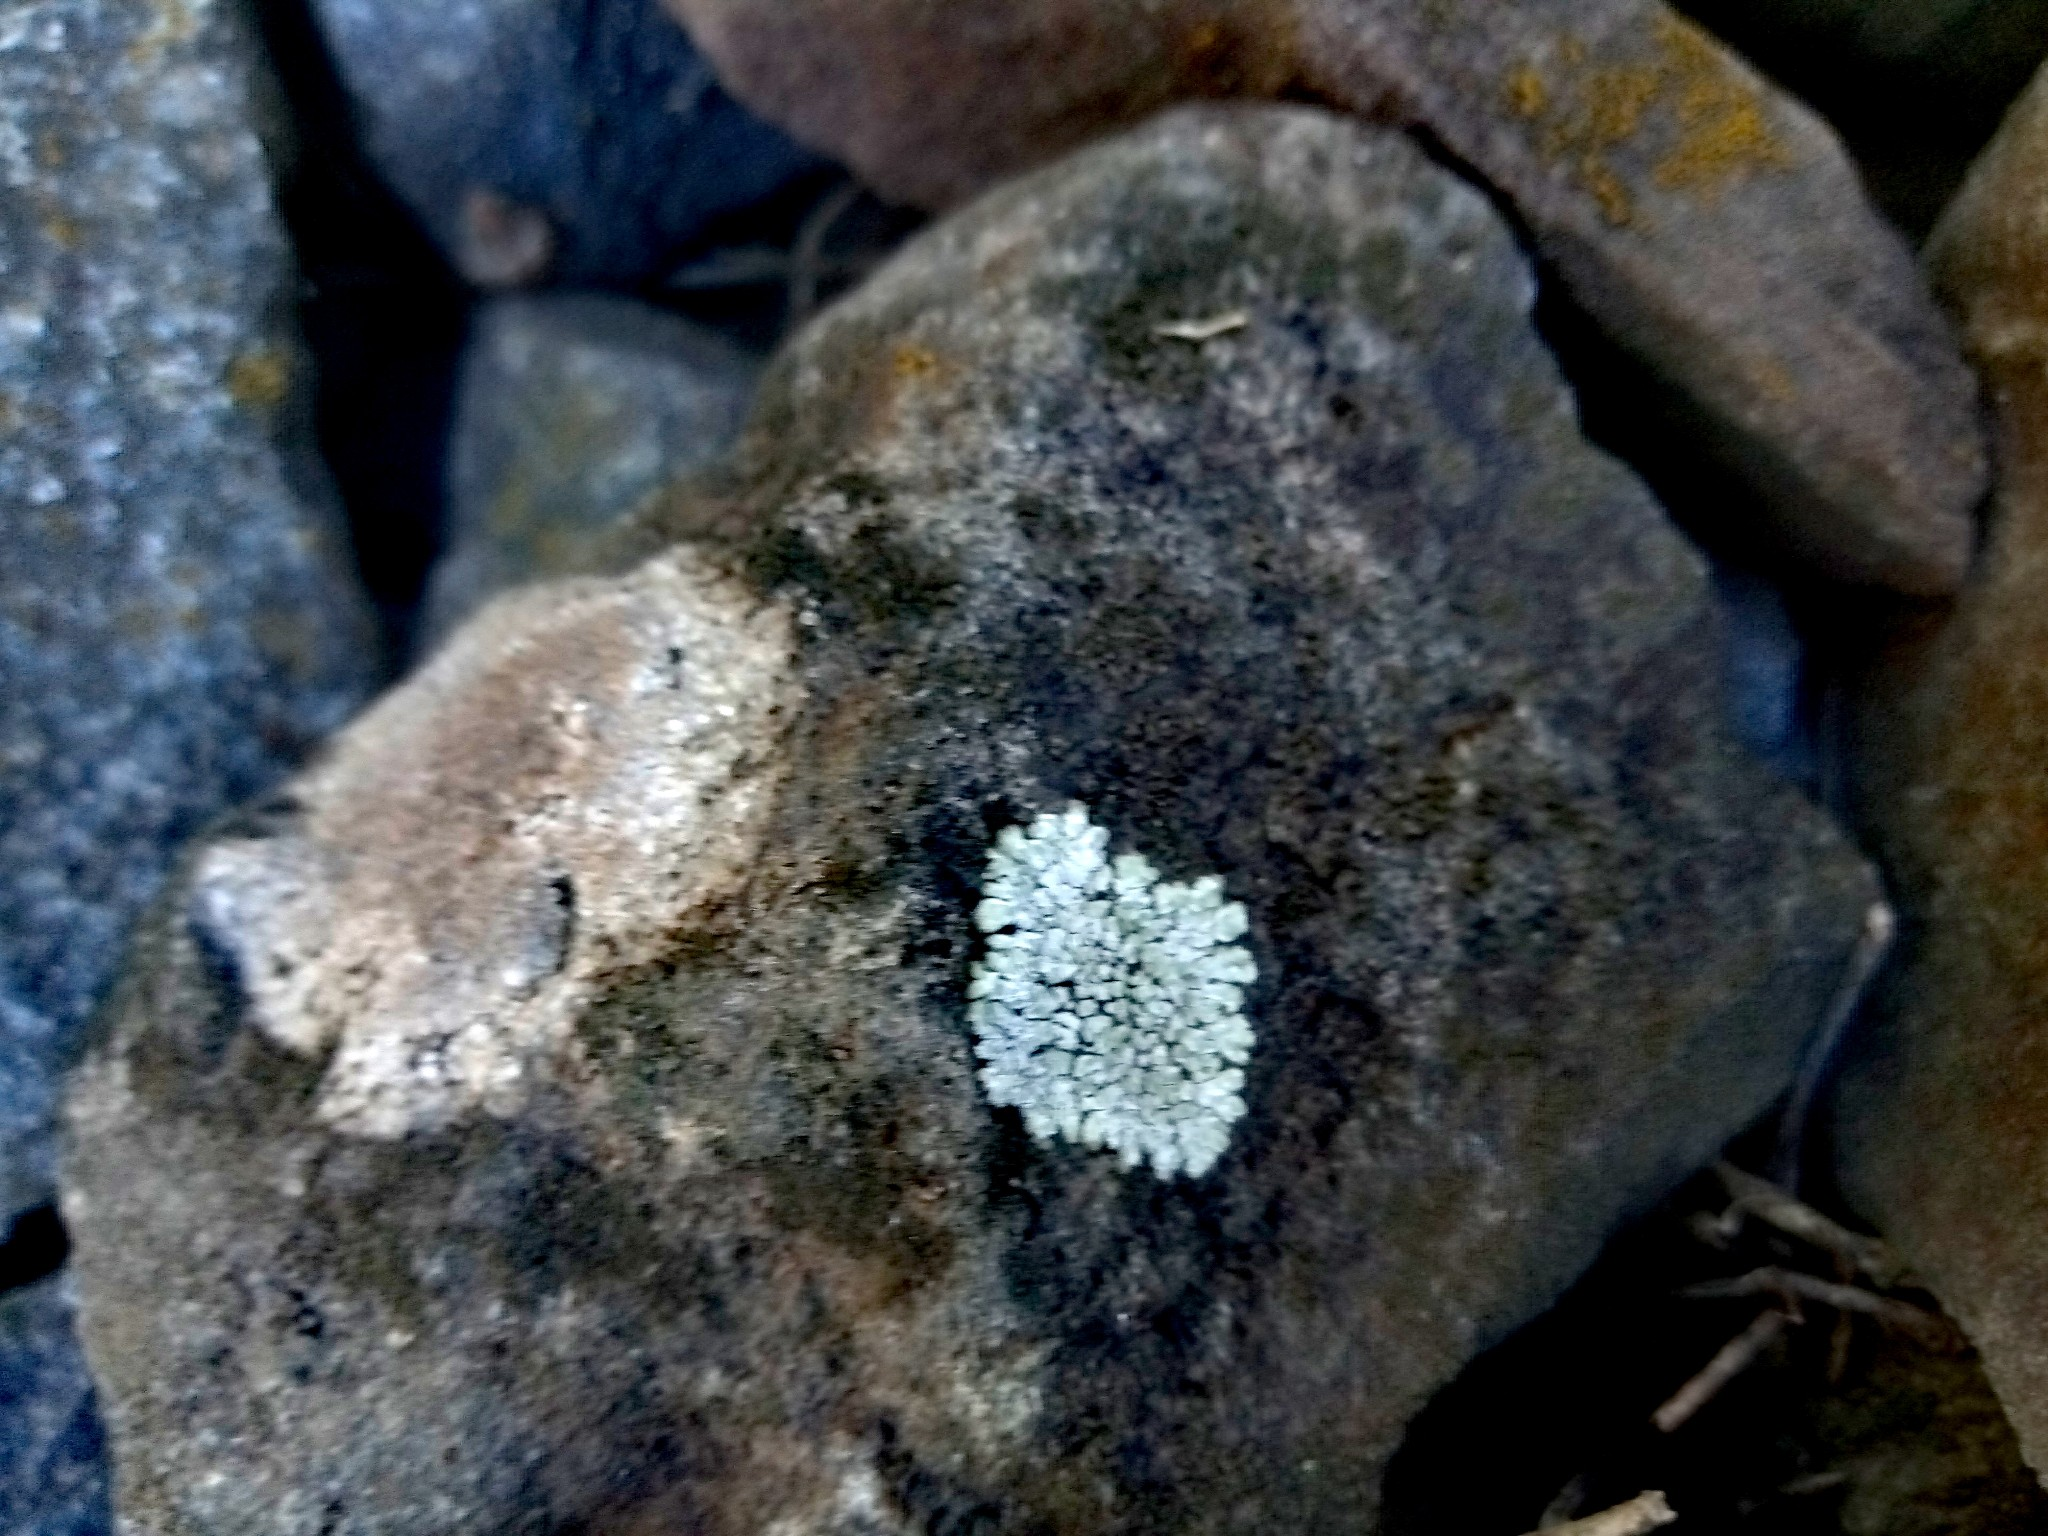 lichens on stones photo 2